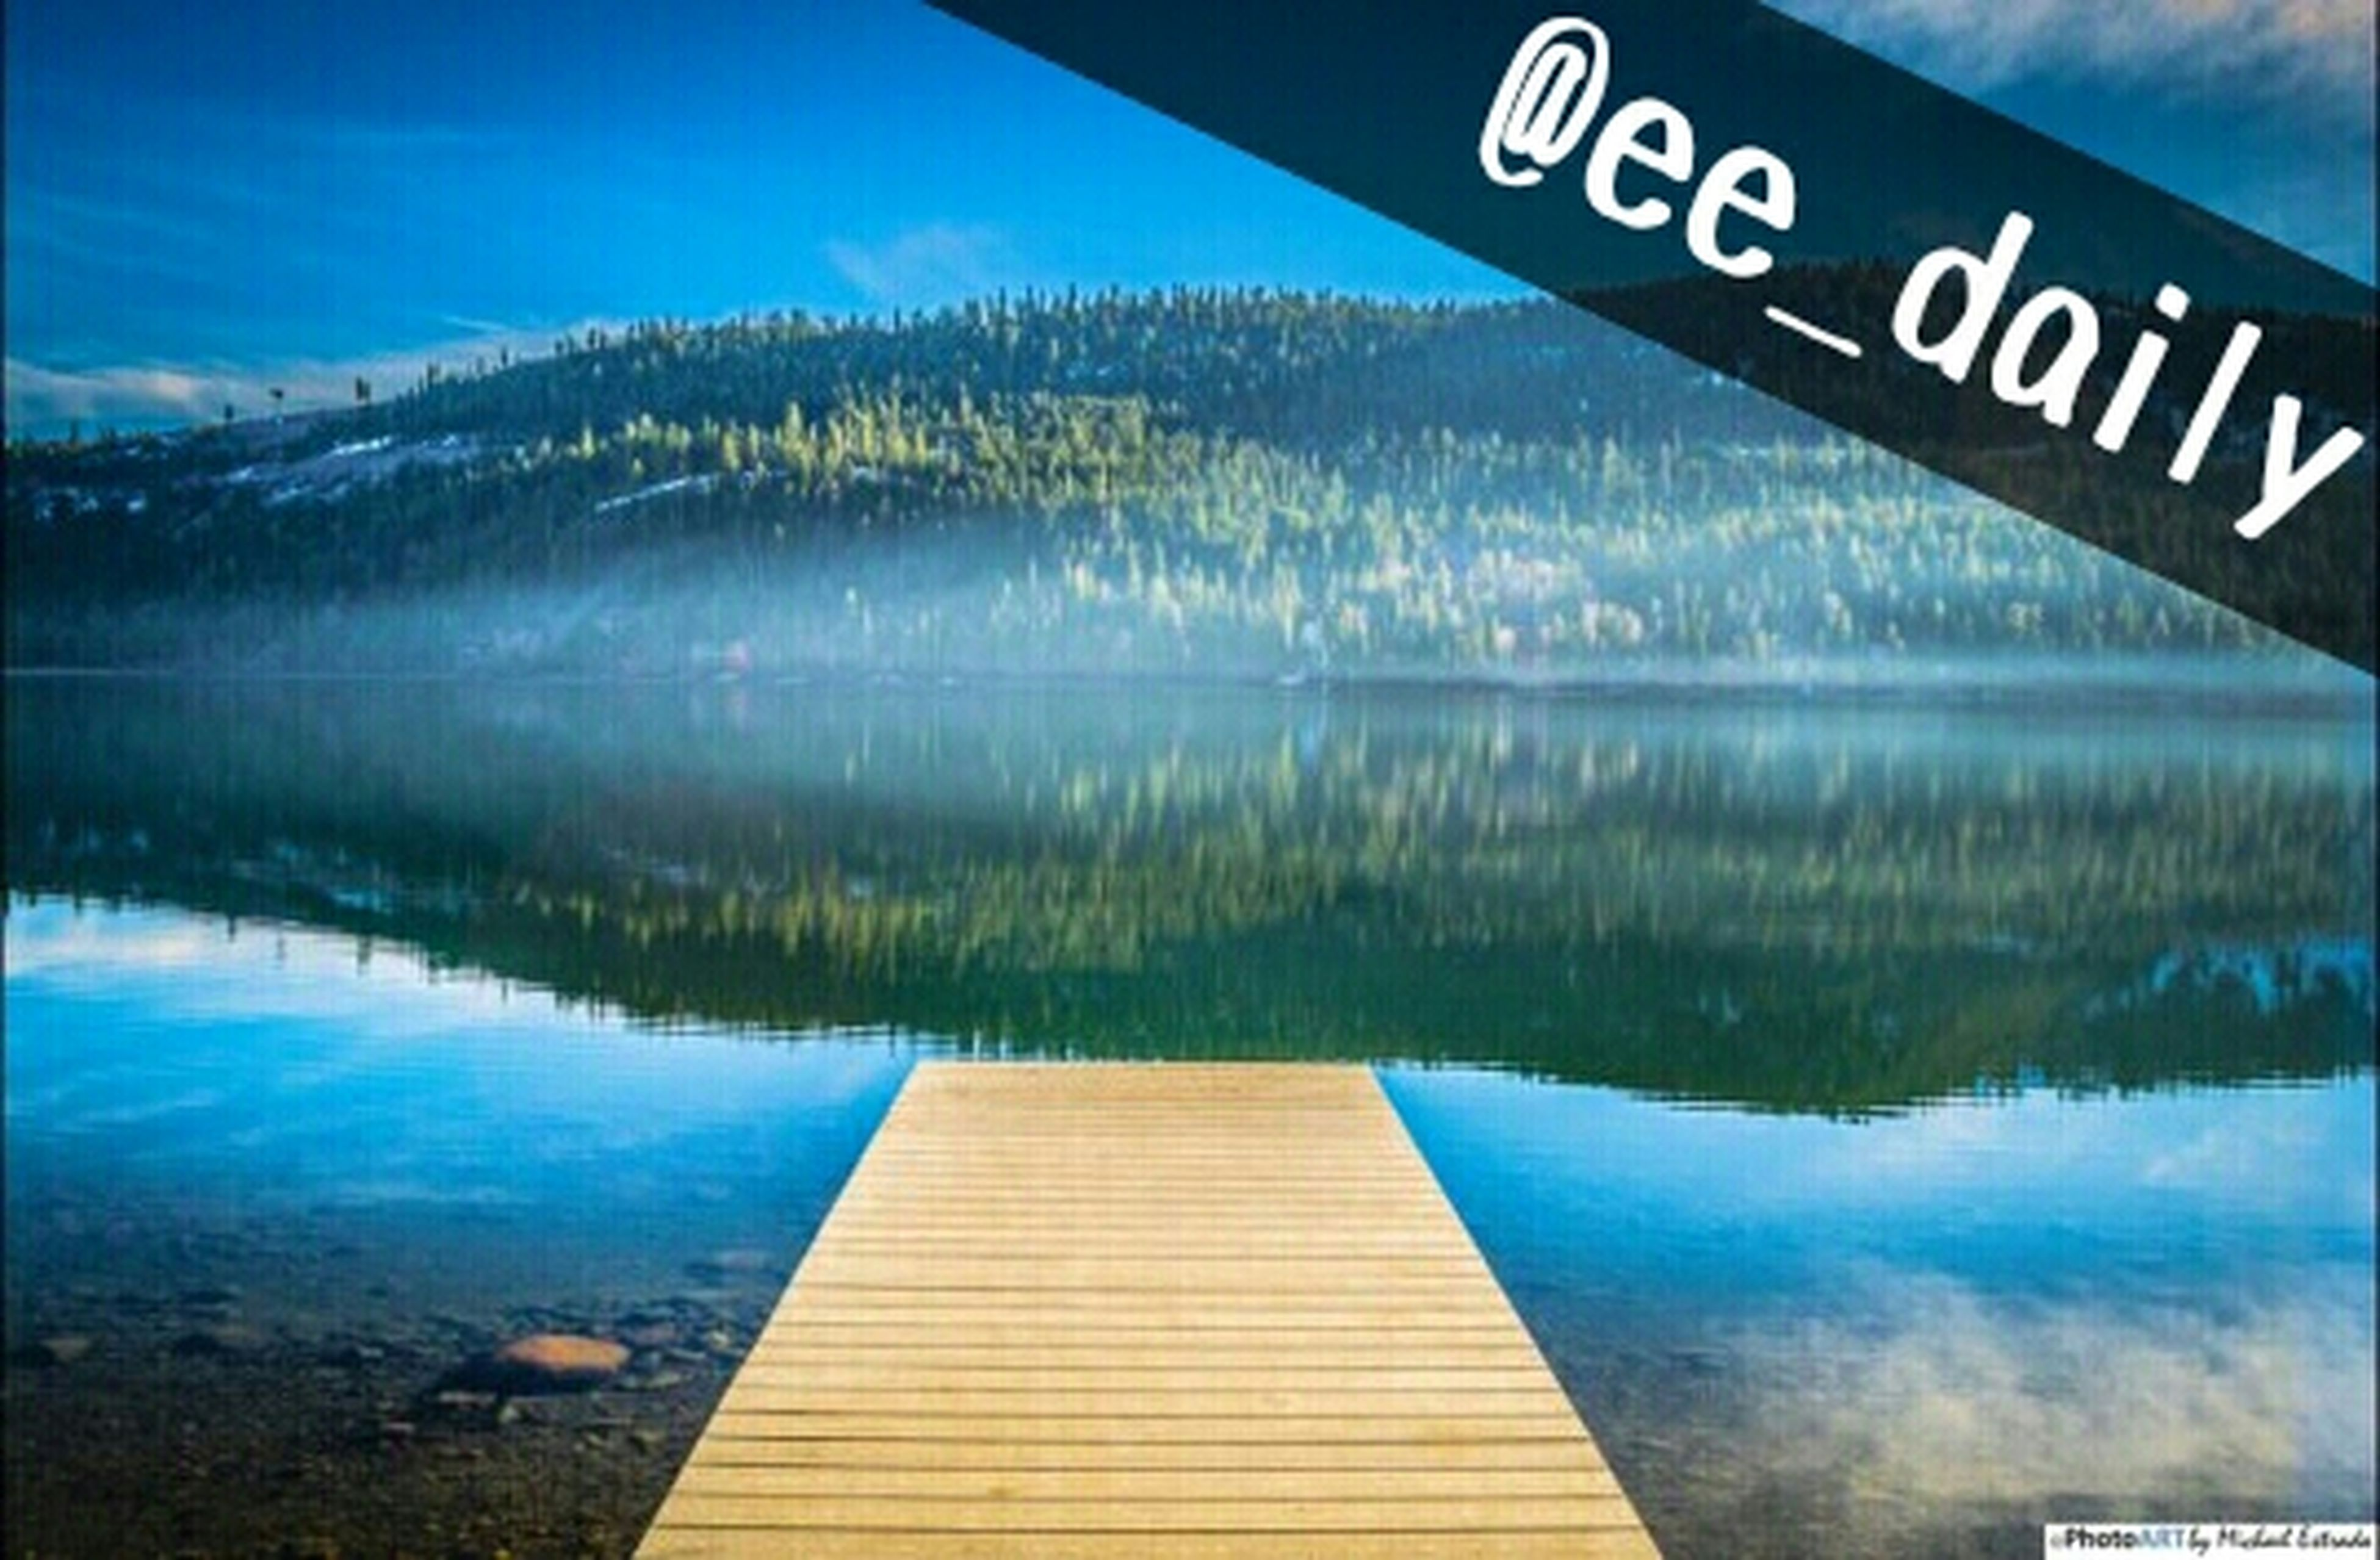 Does any else feel like they are standing at this dock & enjoying the view of of the beautiful green trees straight with the soft blues surrounding you? I sure do! Congrats to EyeEmer, @photoARTbyME (Michael) and thank you for adding your photos to the al Nature Great View Mountains Landscape Lake Nikon Hello World Captured Moment Daily Naturehippys Nature_collection Ee_daily Daily Features Reflection